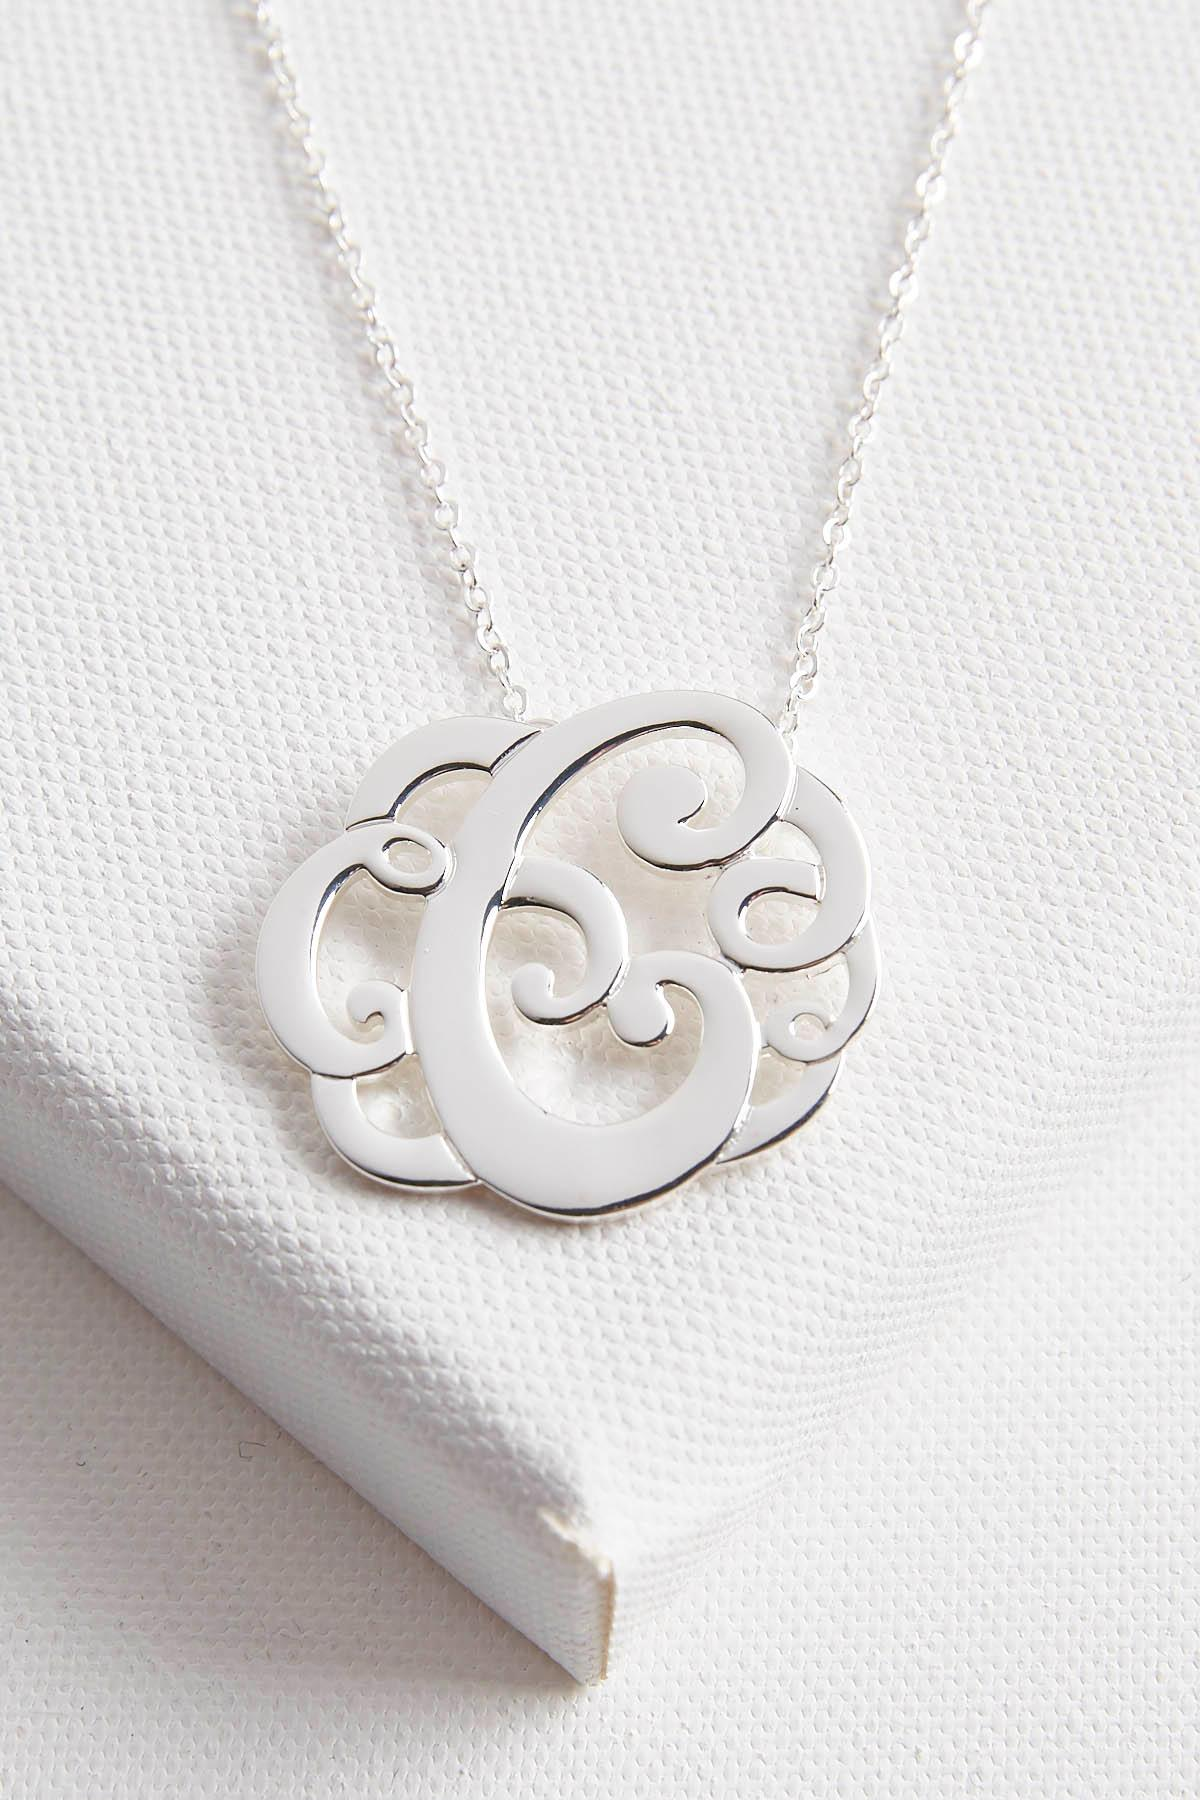 Initial Scroll Brass Pendant Necklace- C